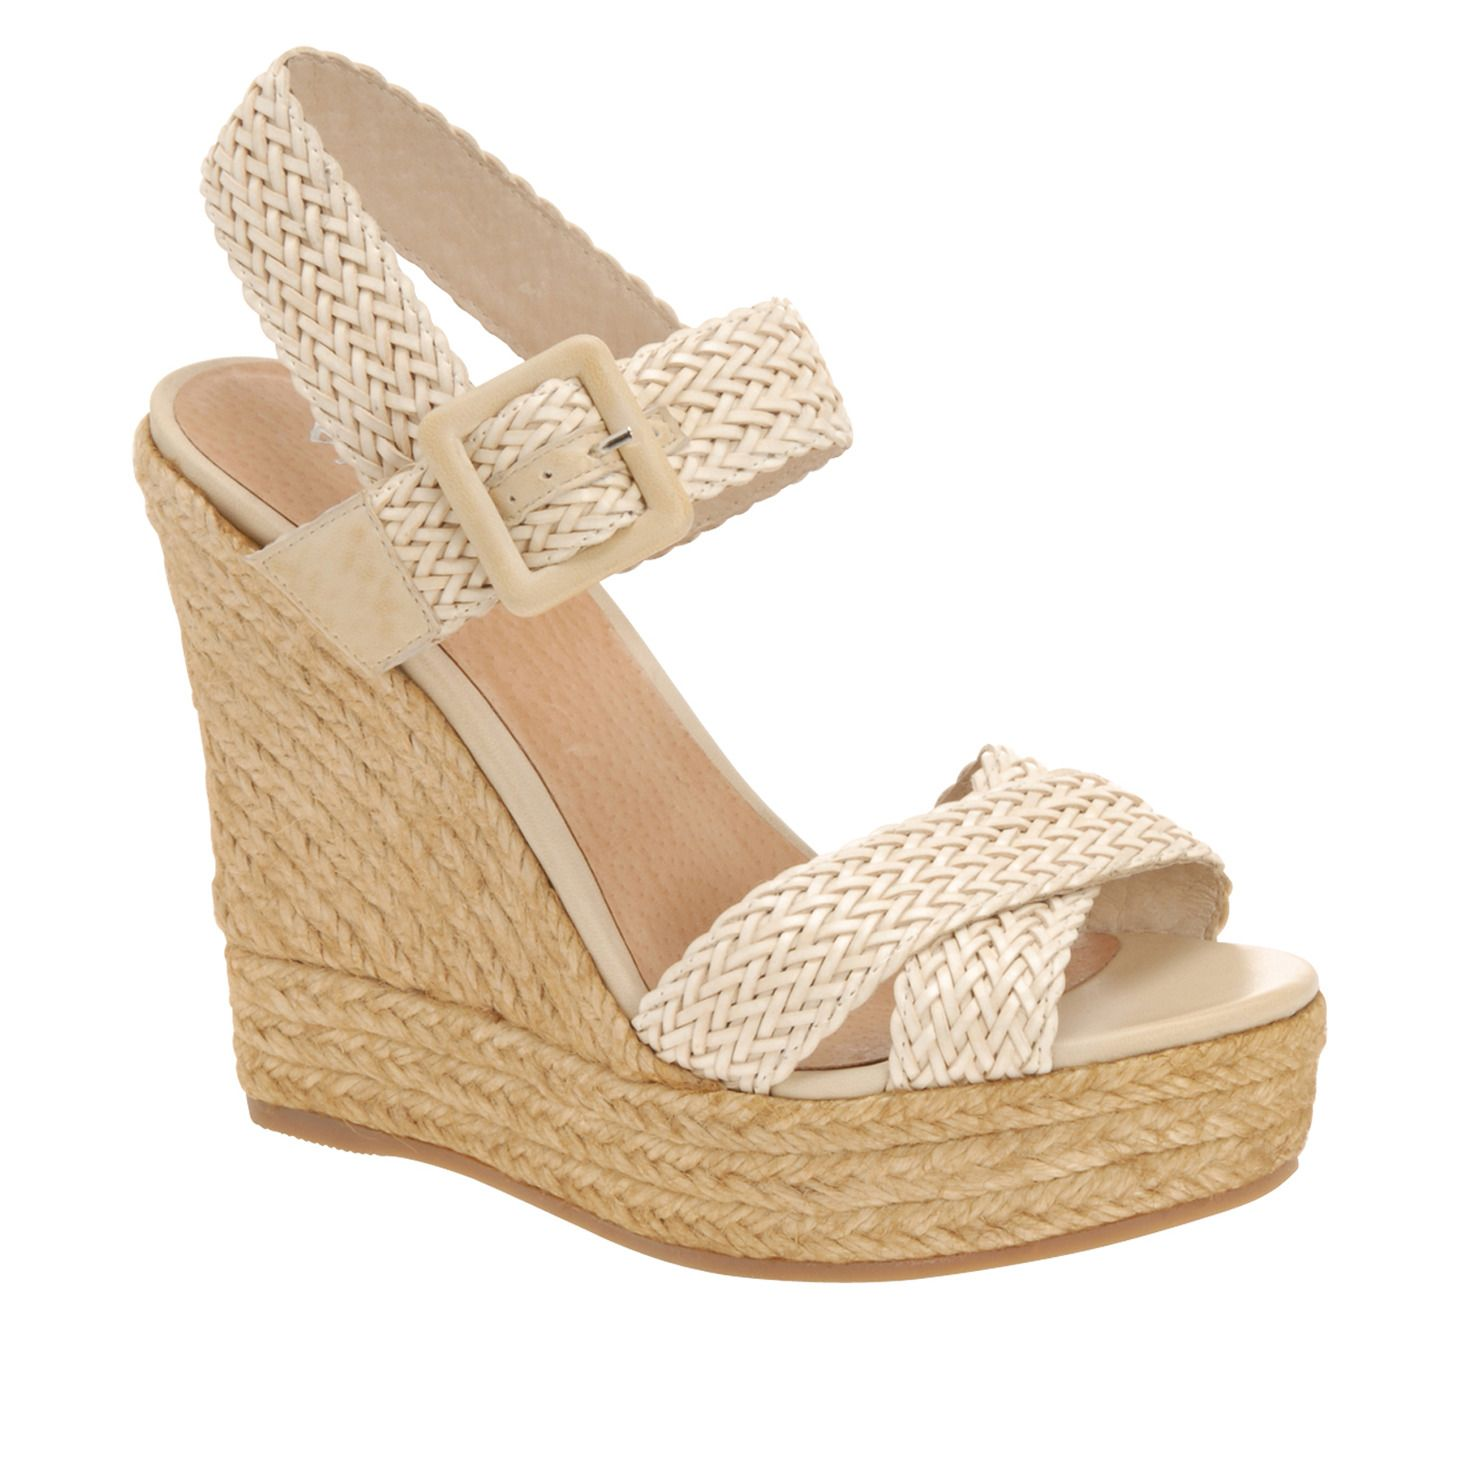 e440f7a95b8c CARSE - women's wedges sandals for sale at ALDO Shoes. | Modest ...